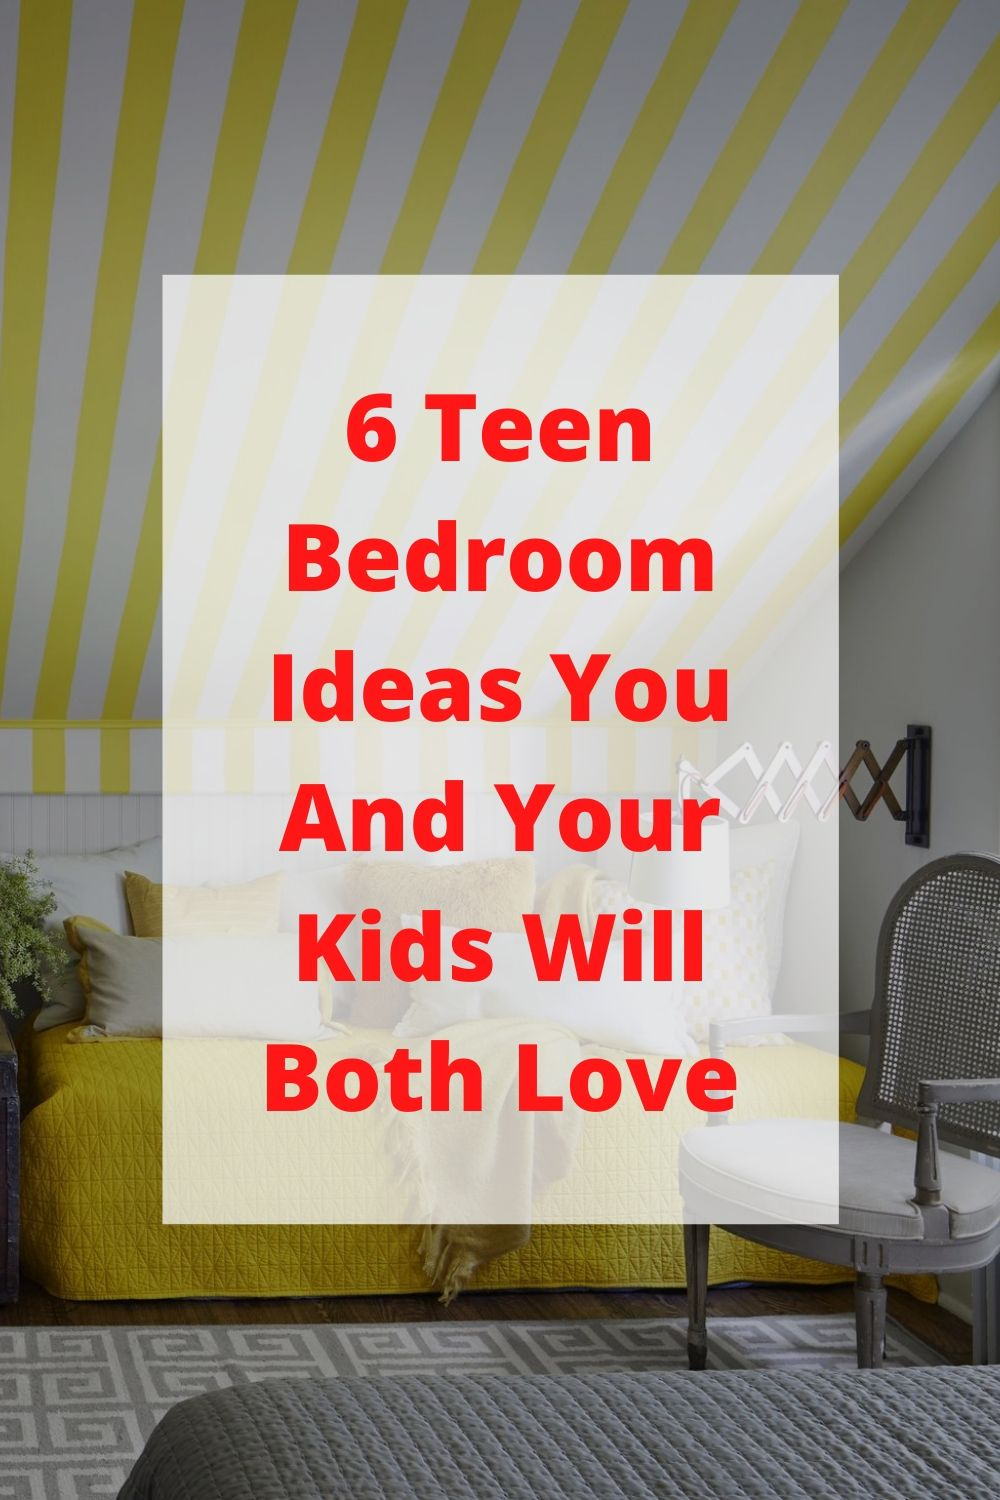 6 Teen Bedroom Ideas You And Your Kids Will Both Love